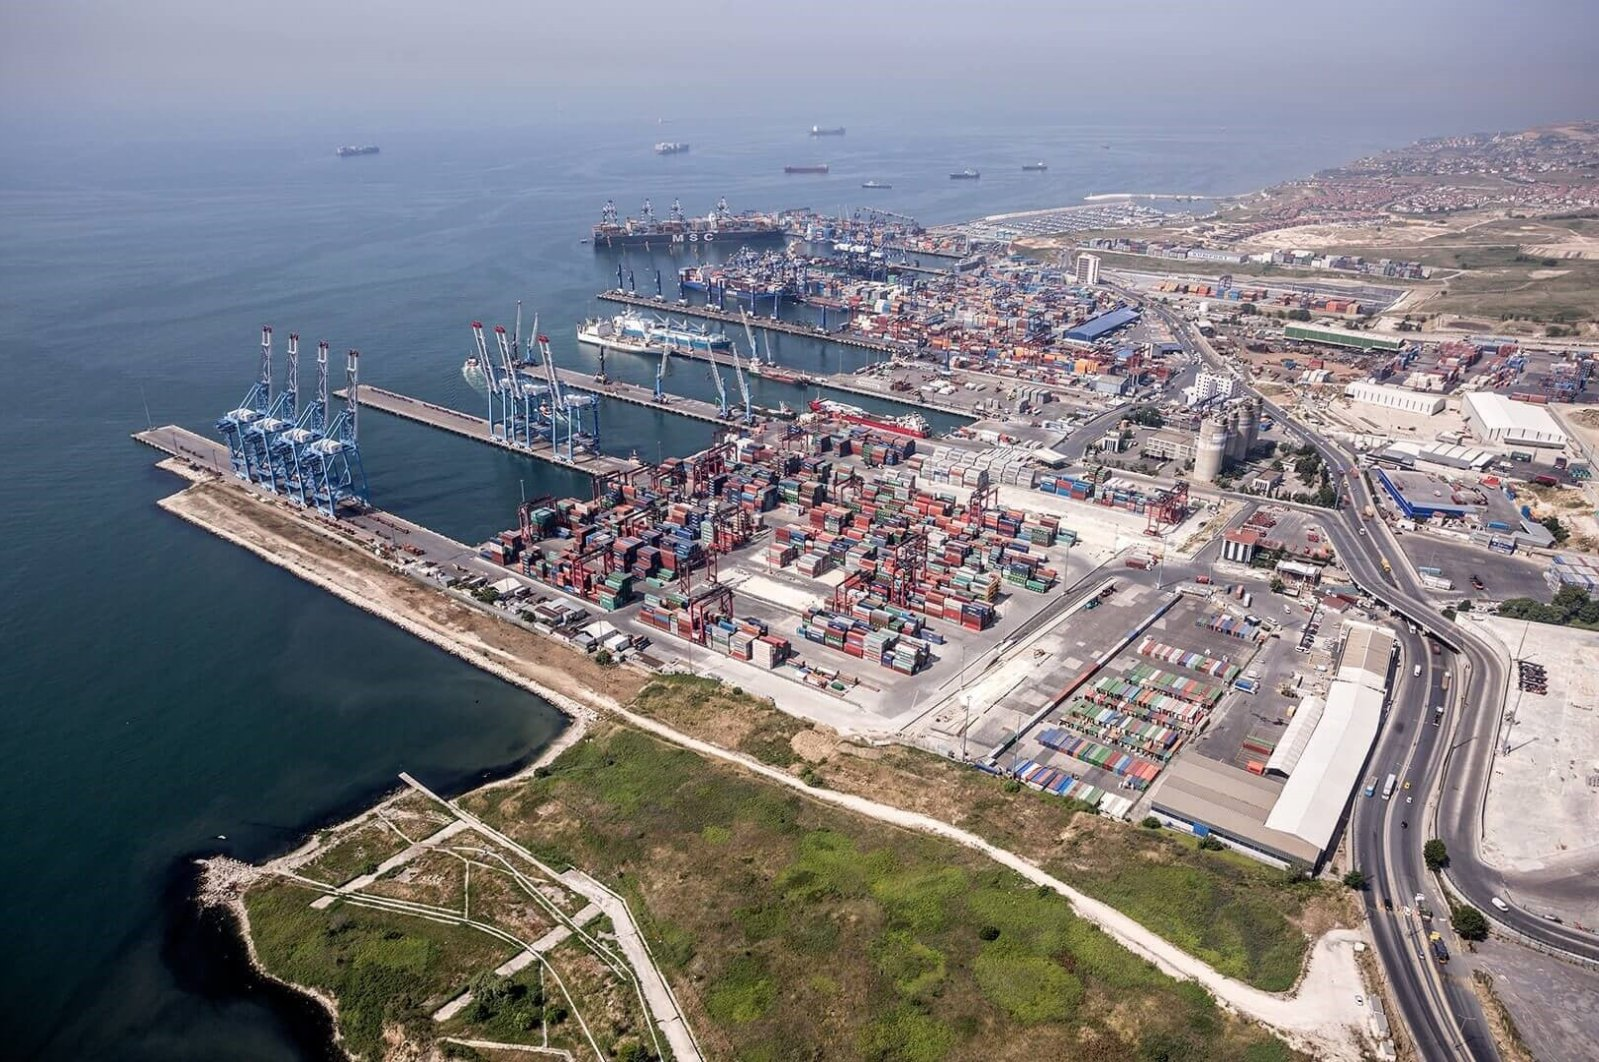 An undated aerial view of Kumport, one of Turkey's largest ports, in Istanbul, Turkey. (Photo courtesy of Kumport)